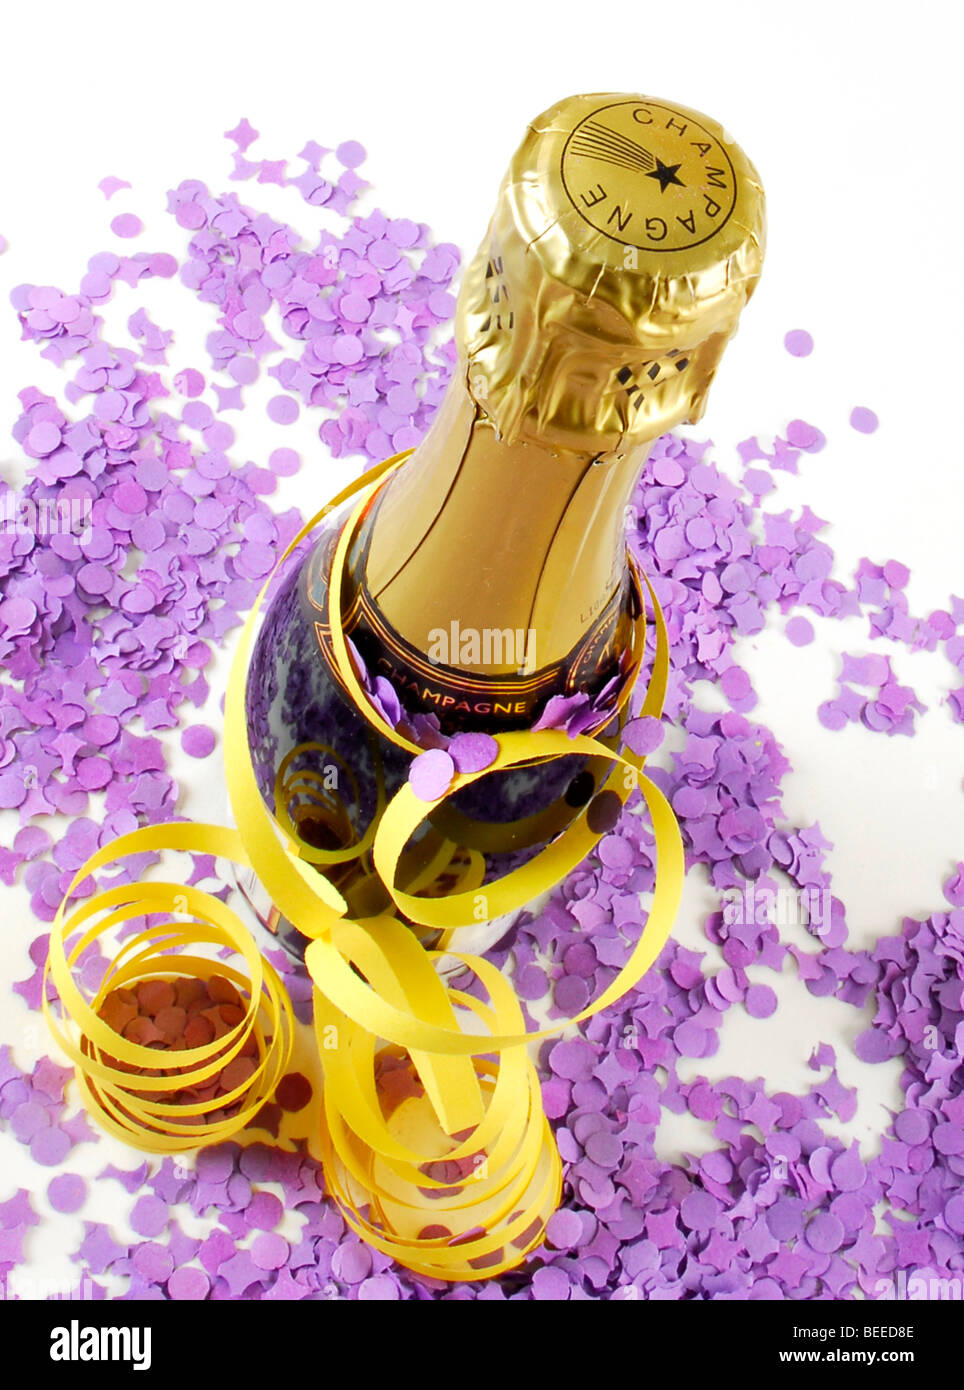 Champagne bottle with streamers and confetti - Stock Image